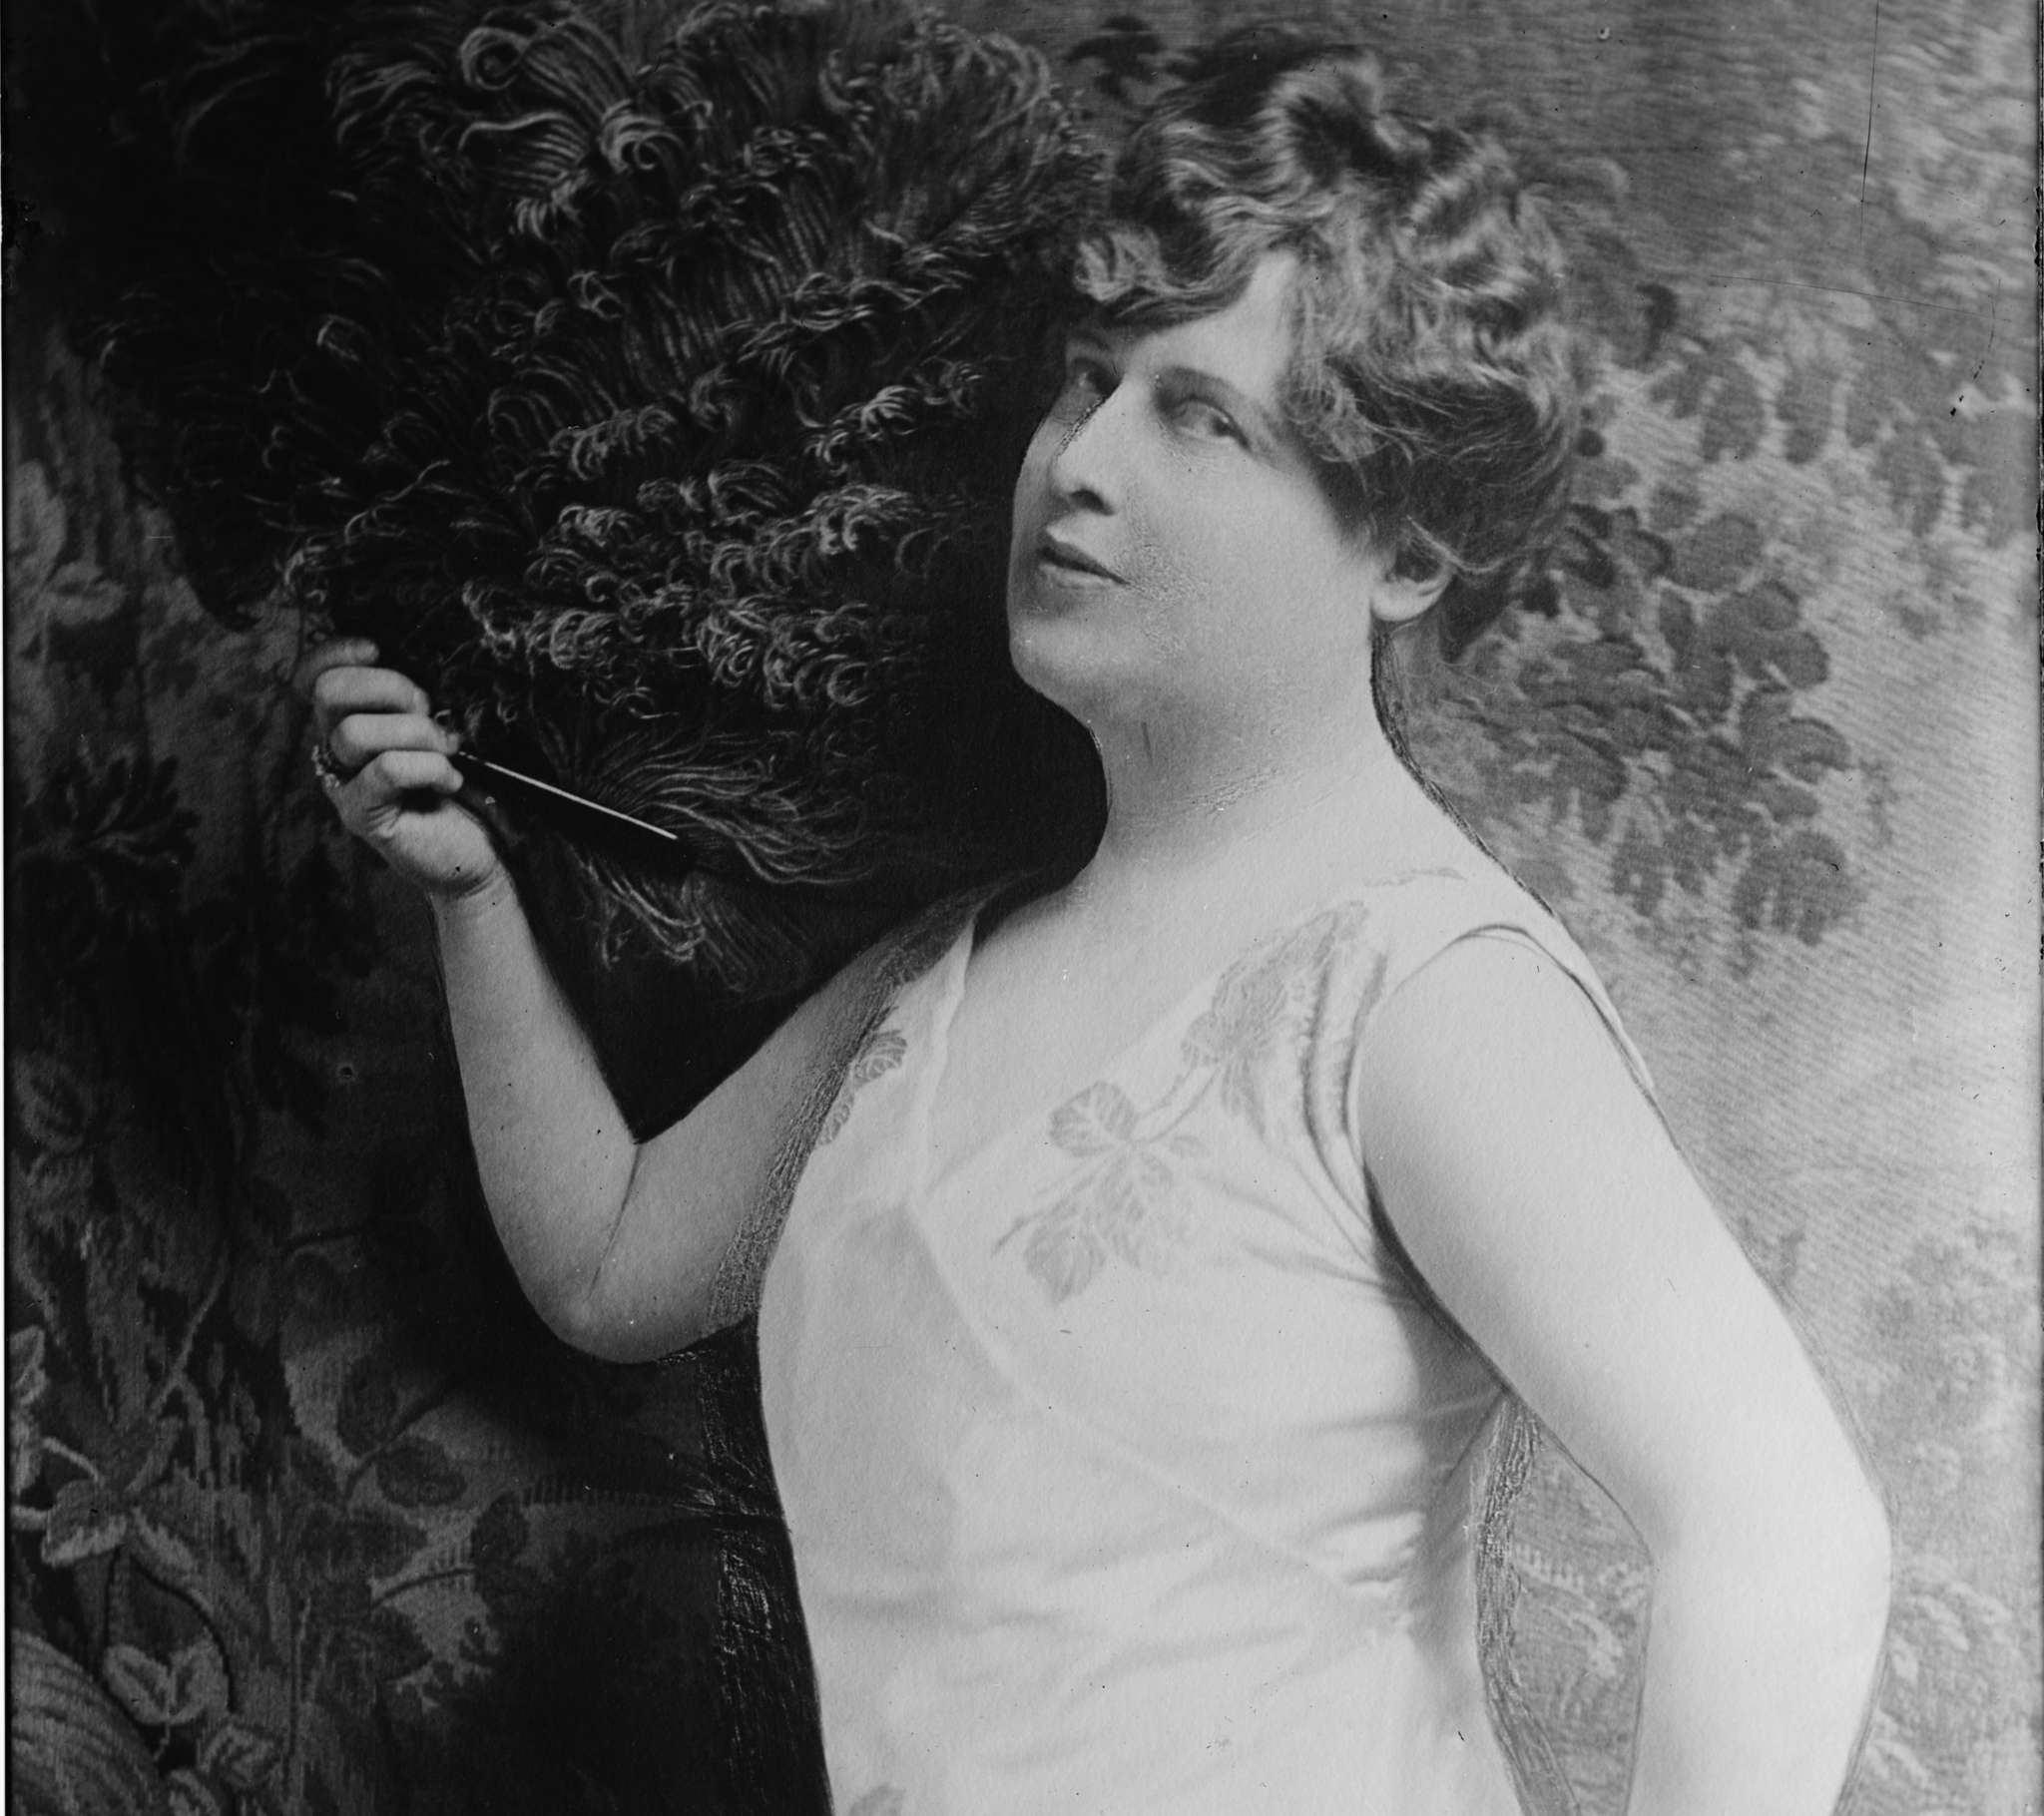 Florence Foster Jenkins was a Wilkes-Barre-born socialite and amateur opera singer who was known and ridiculed for her singing voice. She usually performed at small parties that were invitation-only, but she eventually gave one public performance at Carnegie Hall.